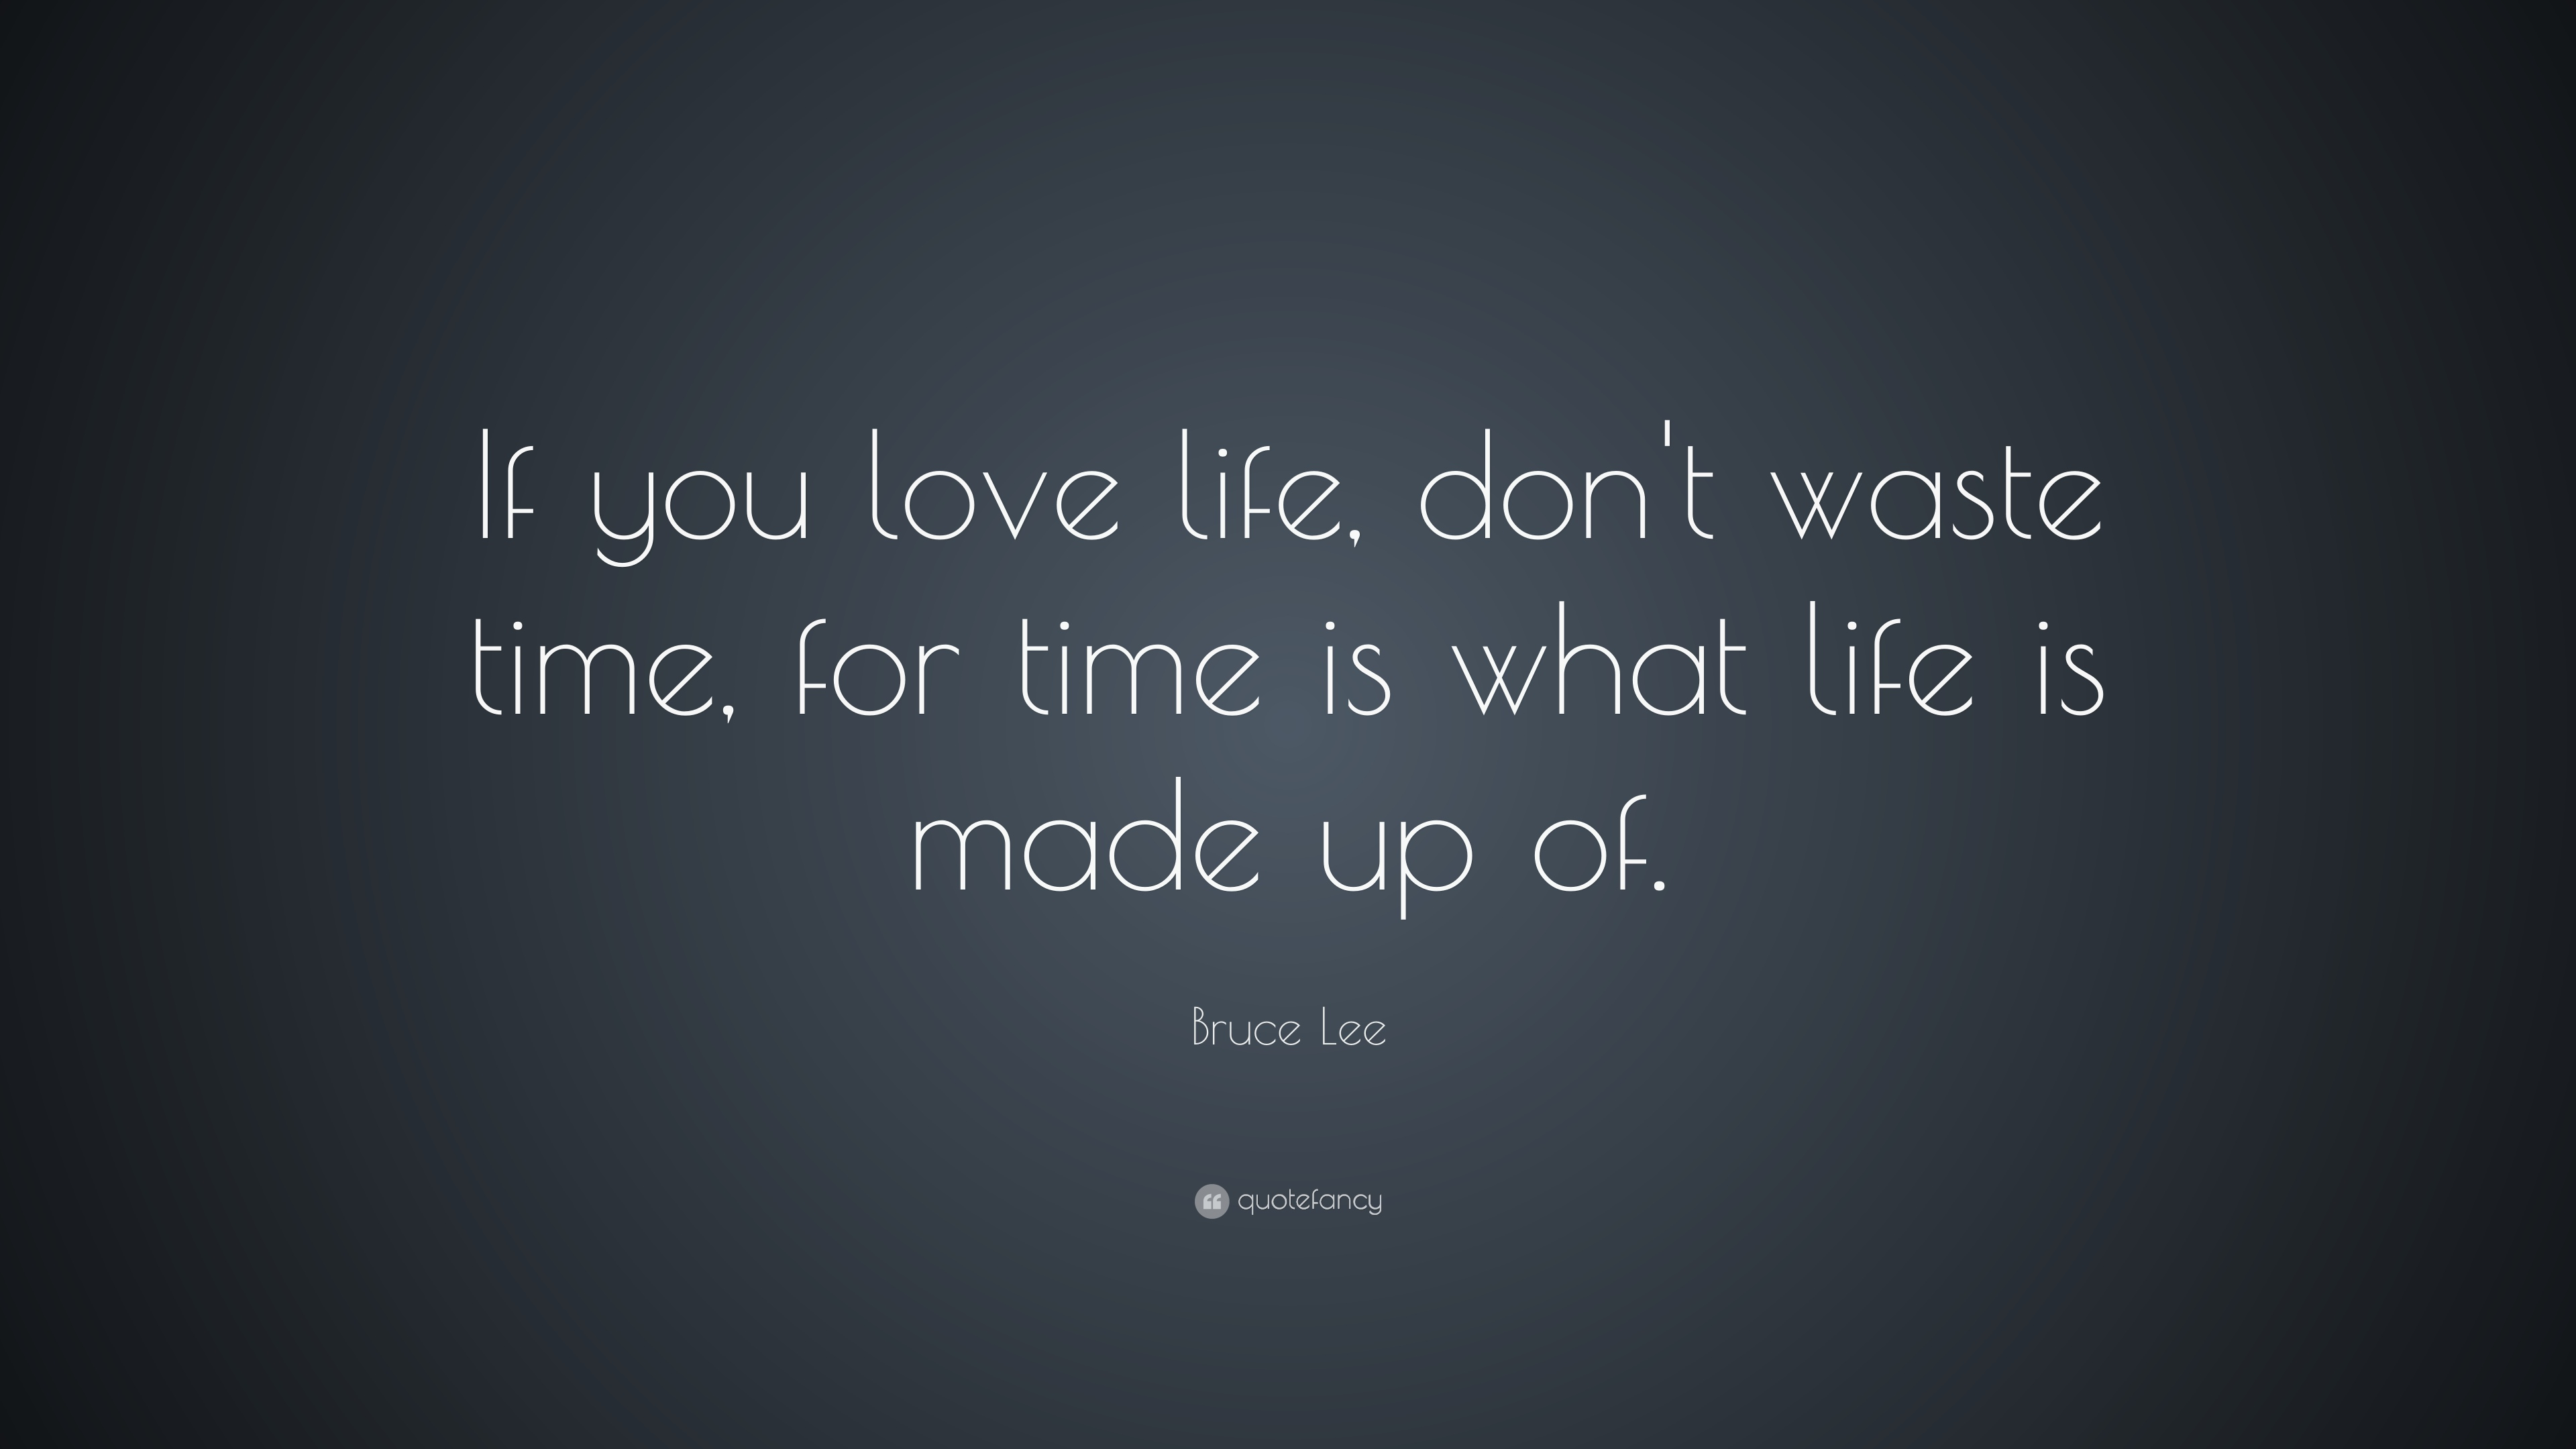 Funny Quotes On Love Is Waste Of Time : ... Bruce-Lee-Quote-If-you-love-life-don-t-waste-time-for-time-is-what.jpg